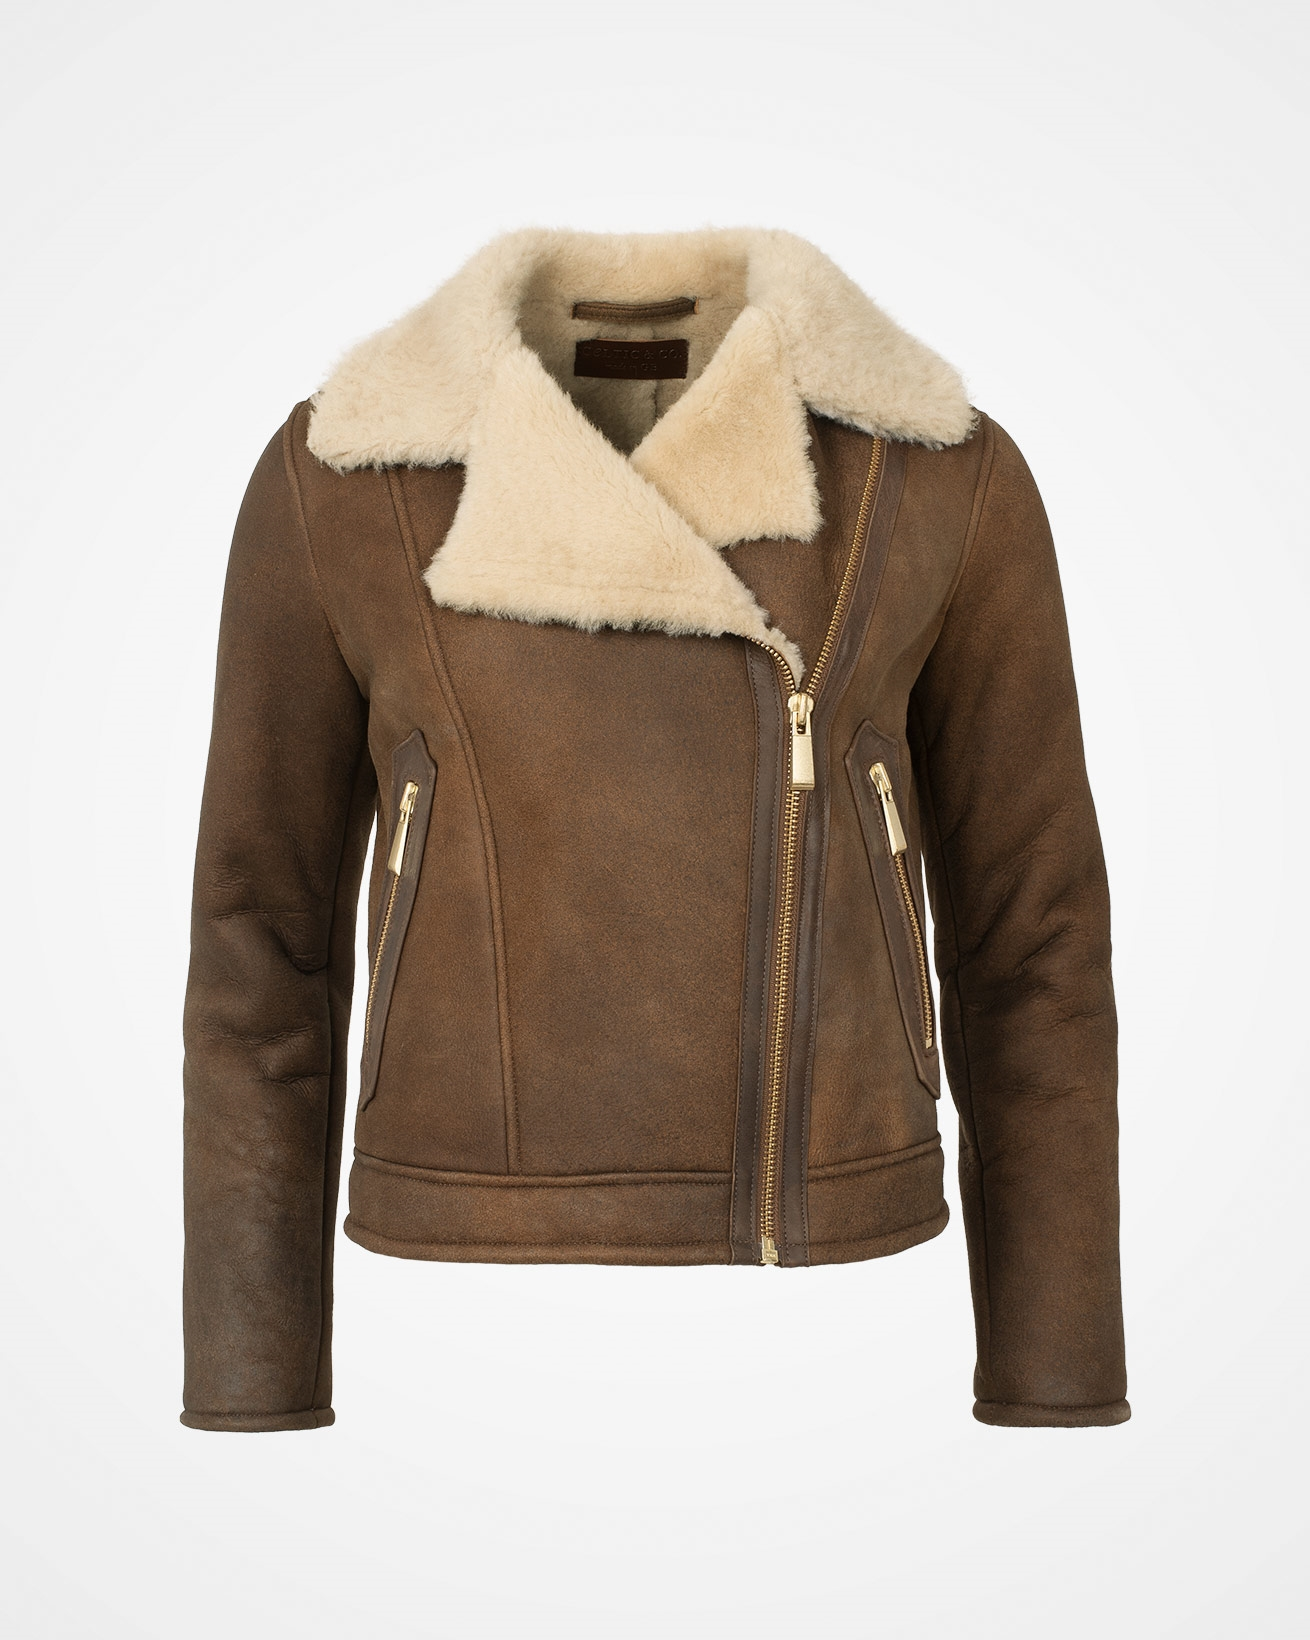 7370_sheepskin-biker-jacket_antique-cream_front.jpg